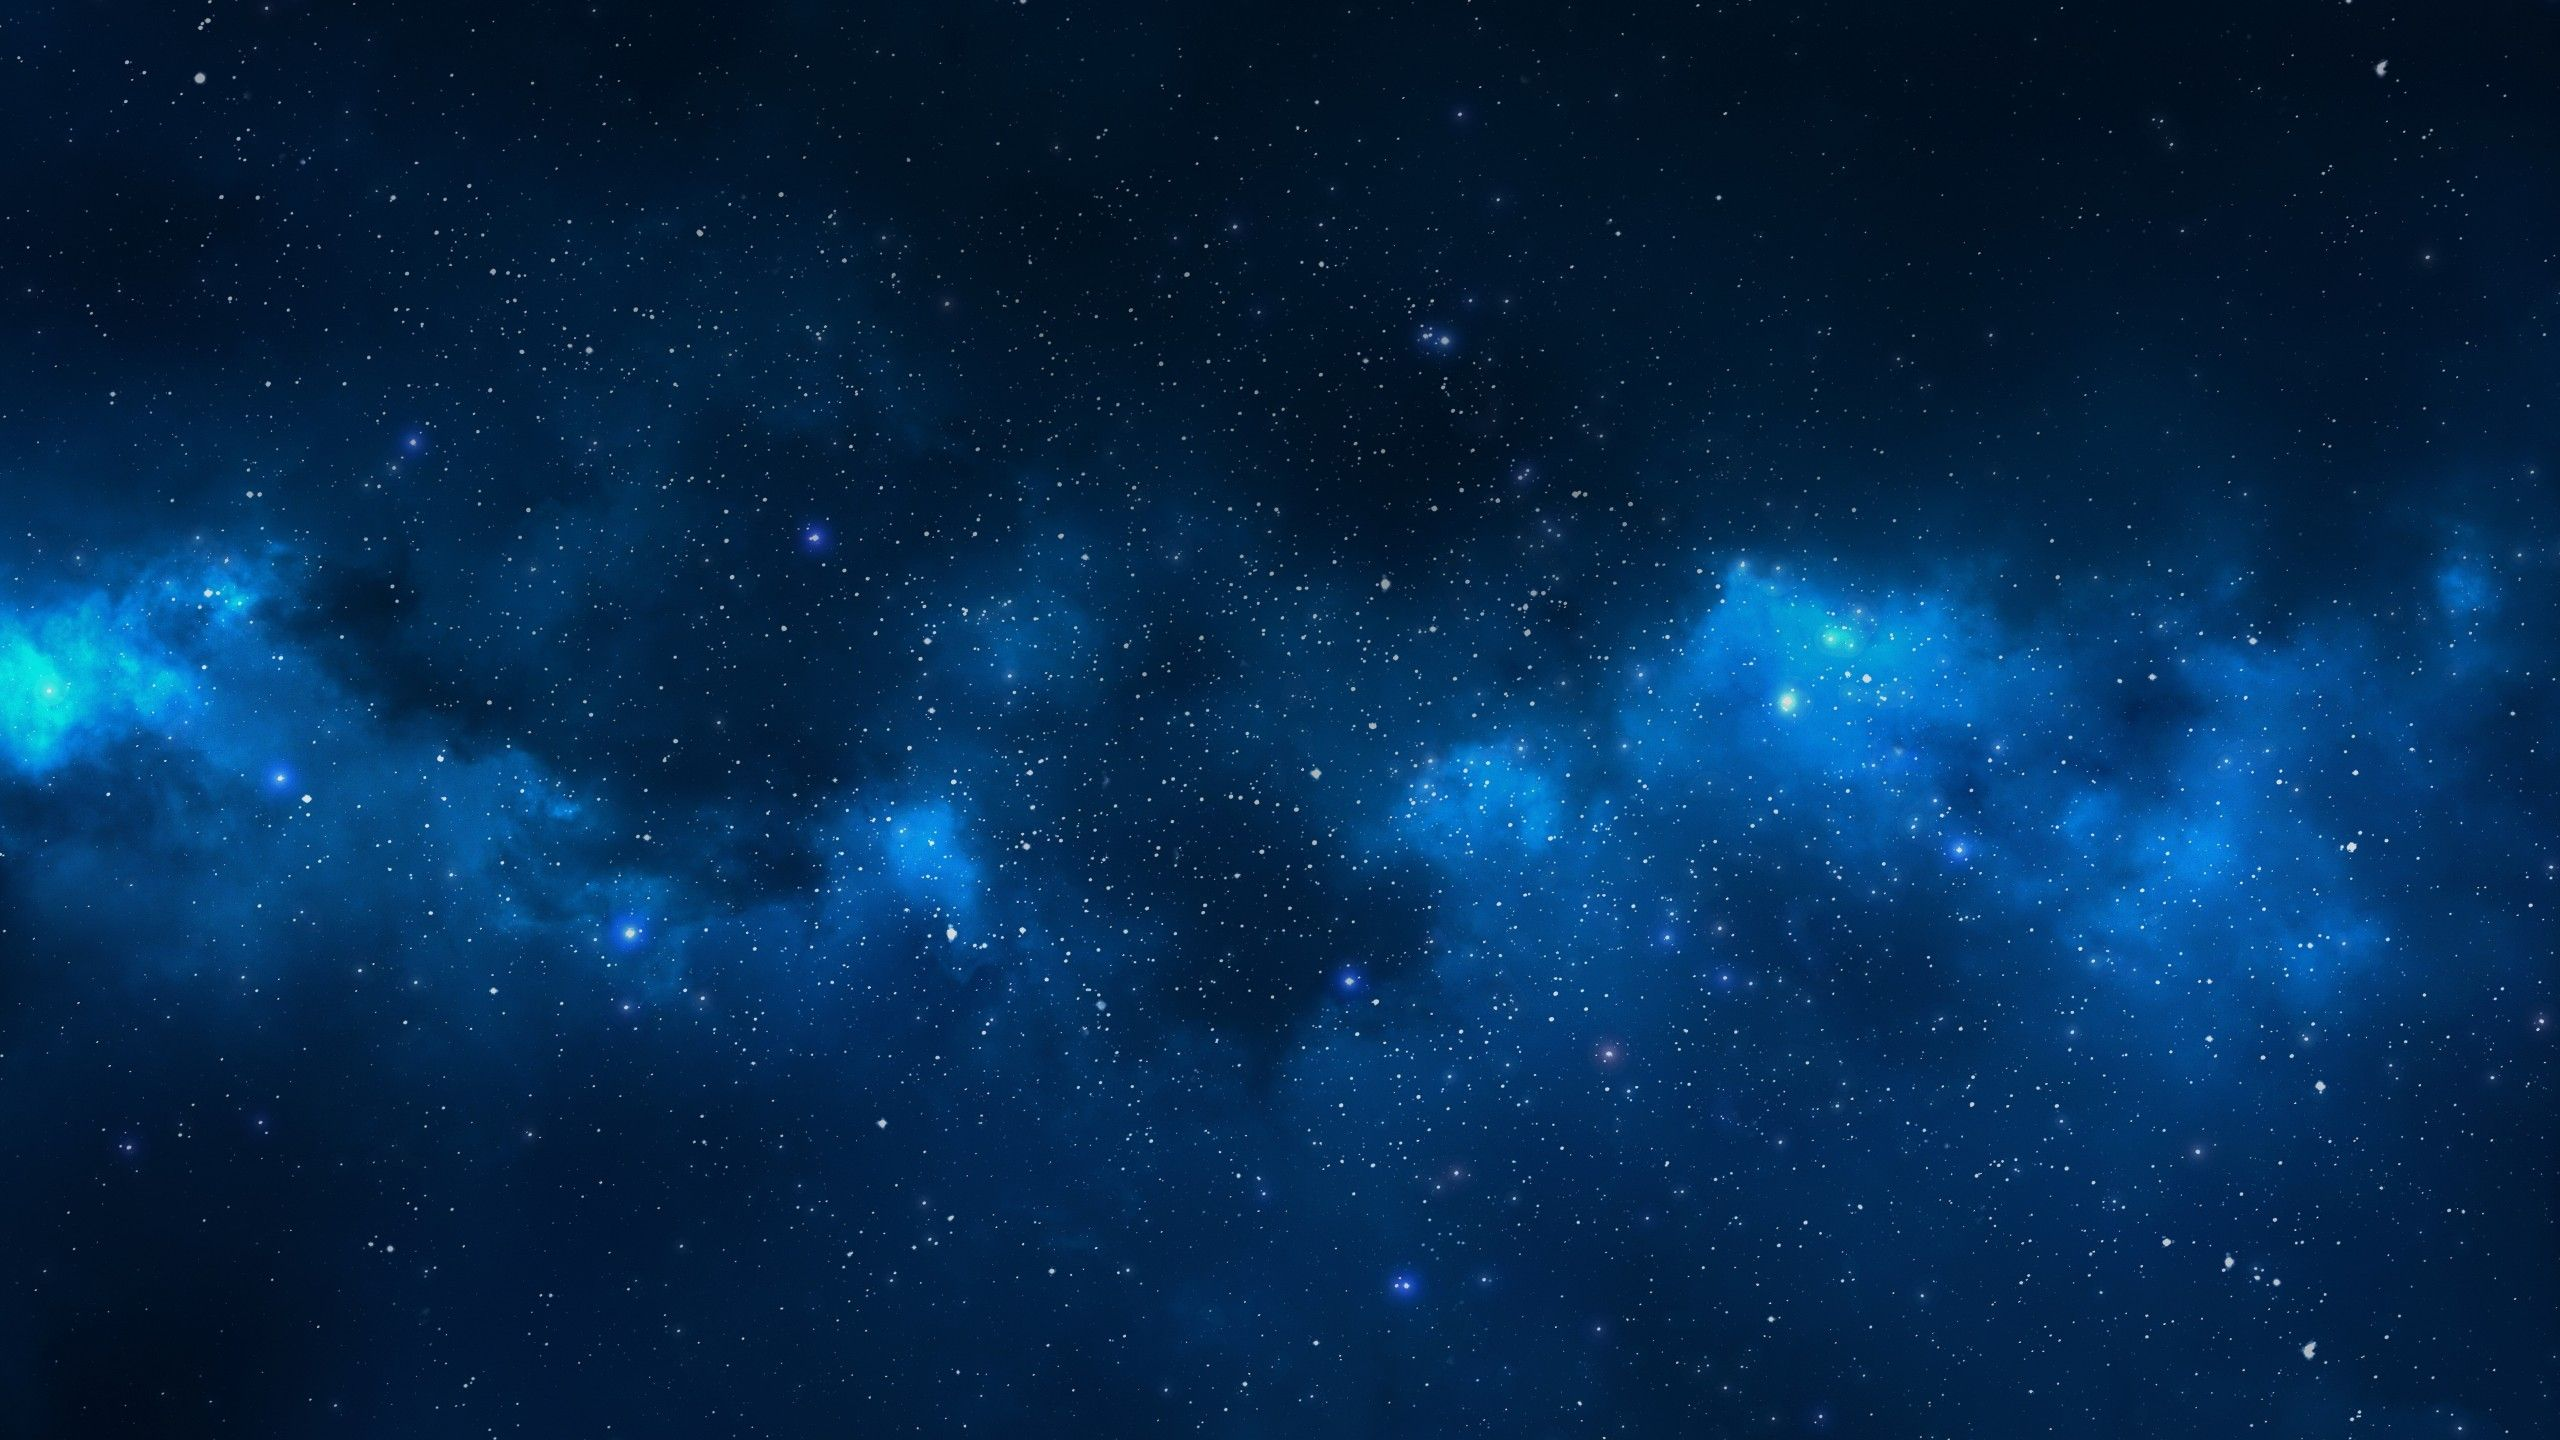 Blue Galaxy Stars Wallpaper page 2   Pics about space gh 2560x1440